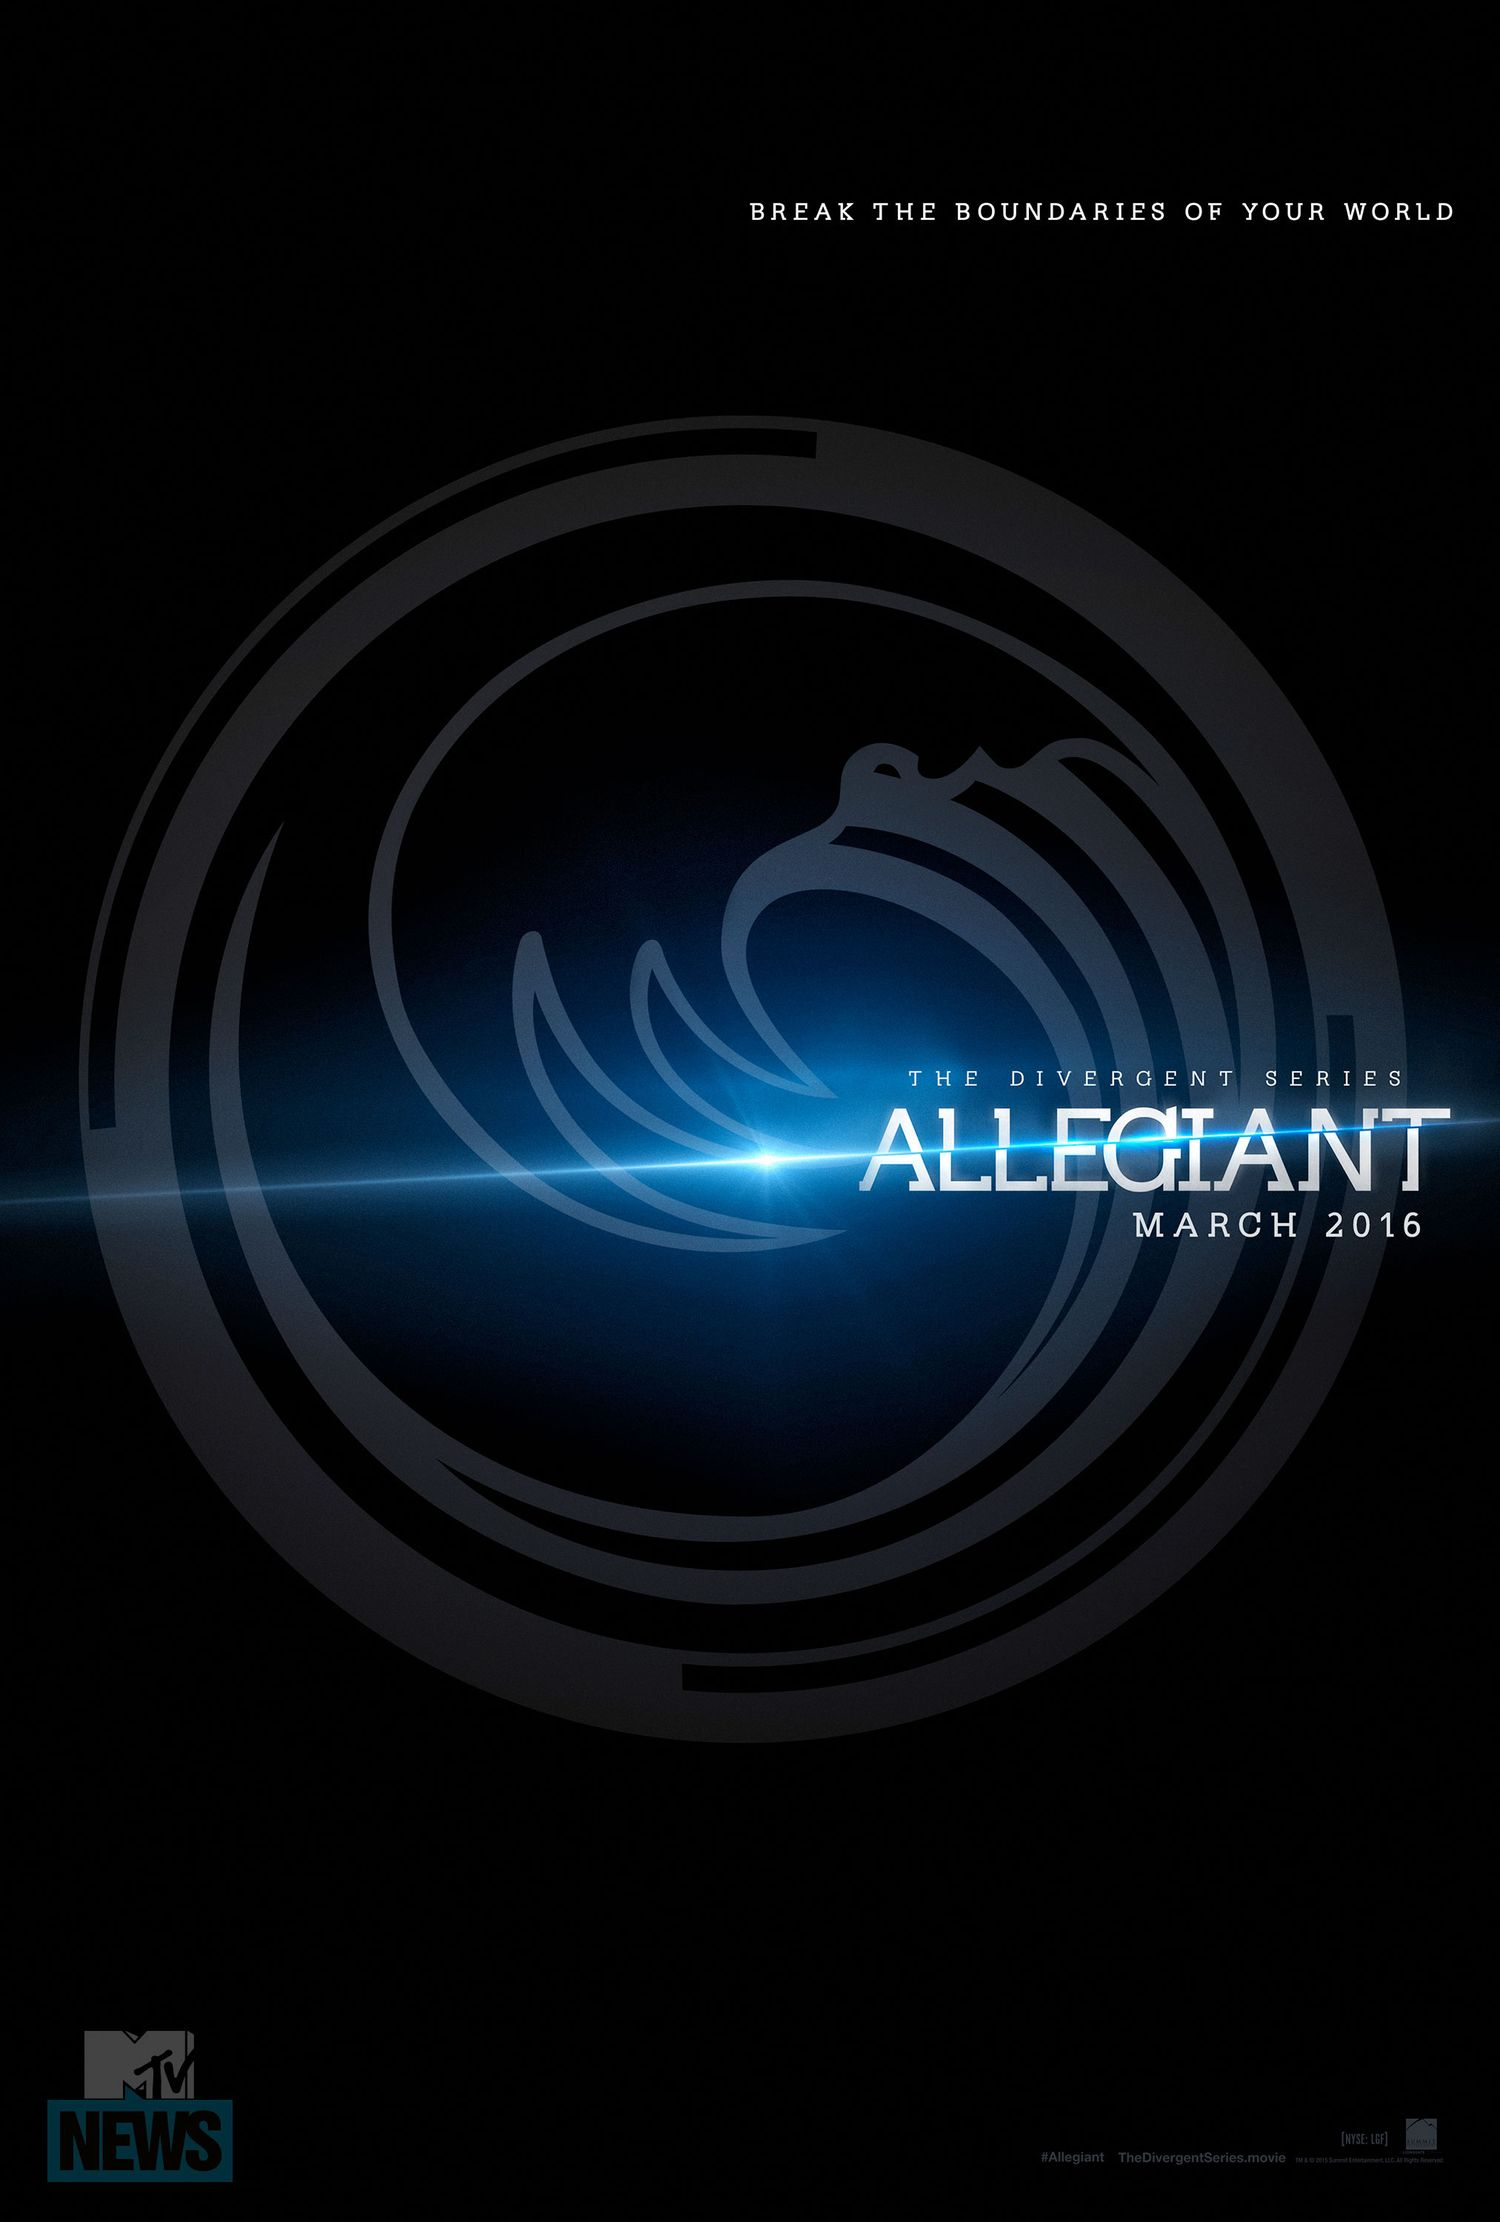 divergent_series_allegiant_movie_poster_1